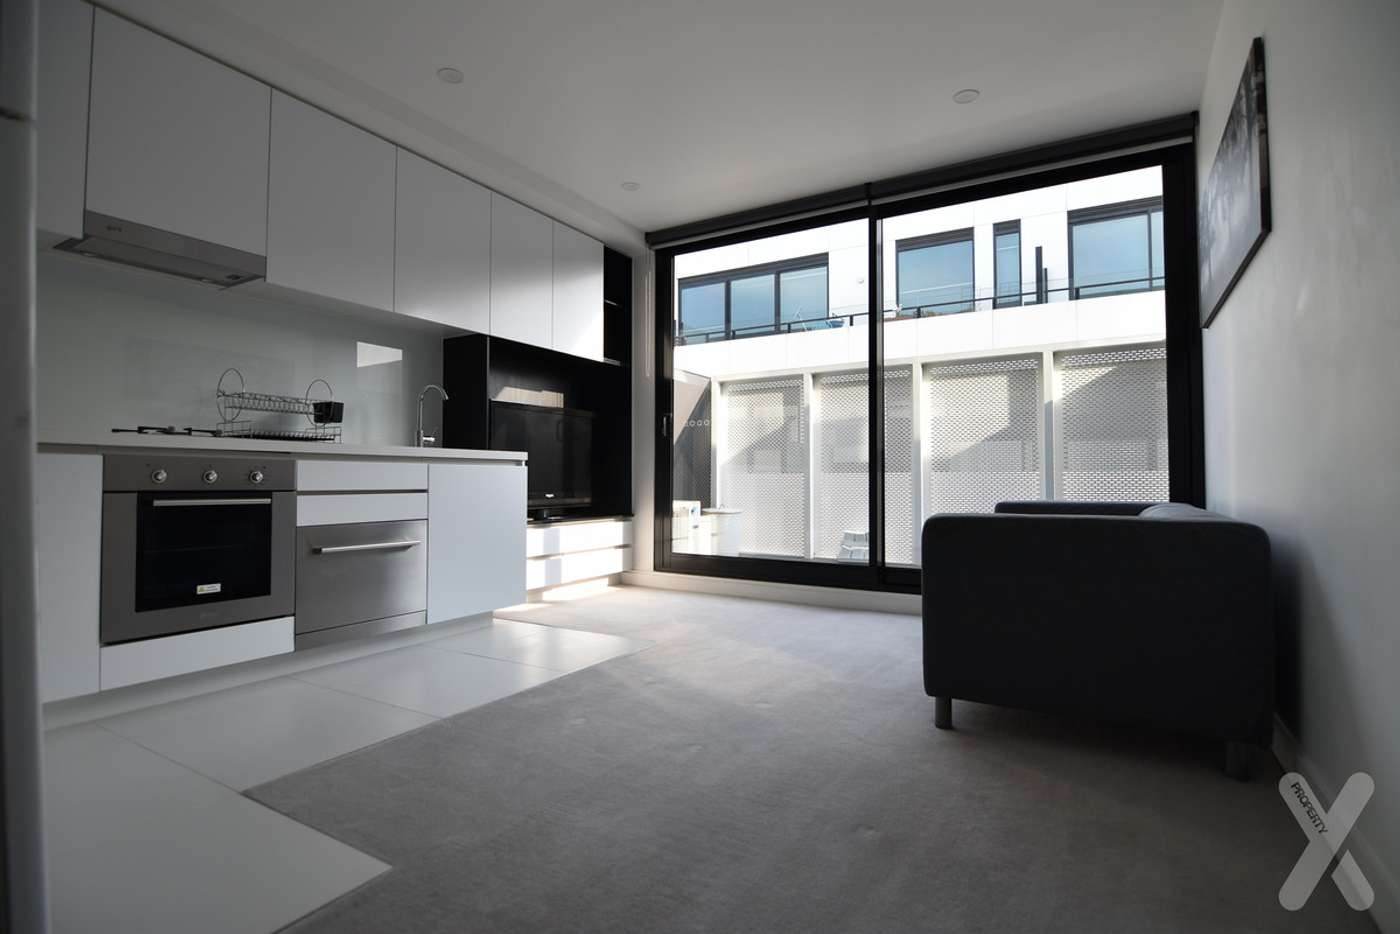 Main view of Homely apartment listing, 305/135 Roden Street, West Melbourne VIC 3003